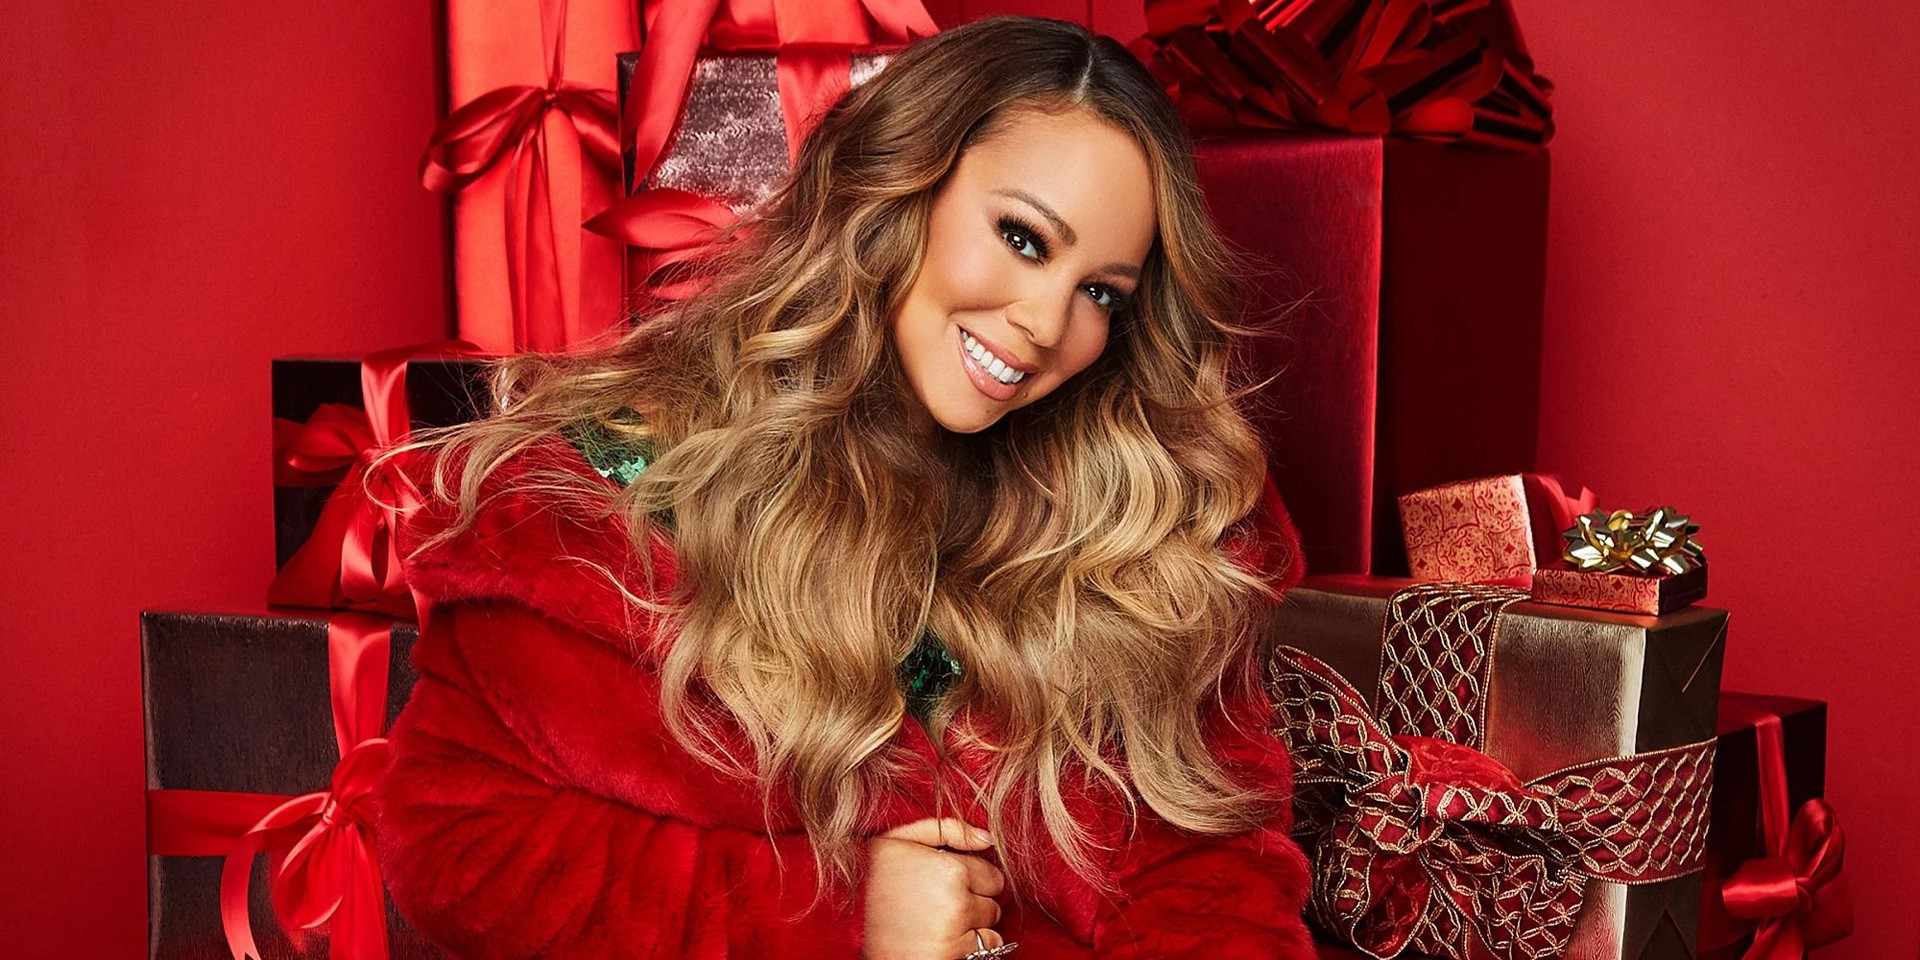 Mariah Carey to usher in the holidays with Magical Christmas Special, featuring Ariana Grande, Jennifer Hudson, Snoop Dogg, and many more